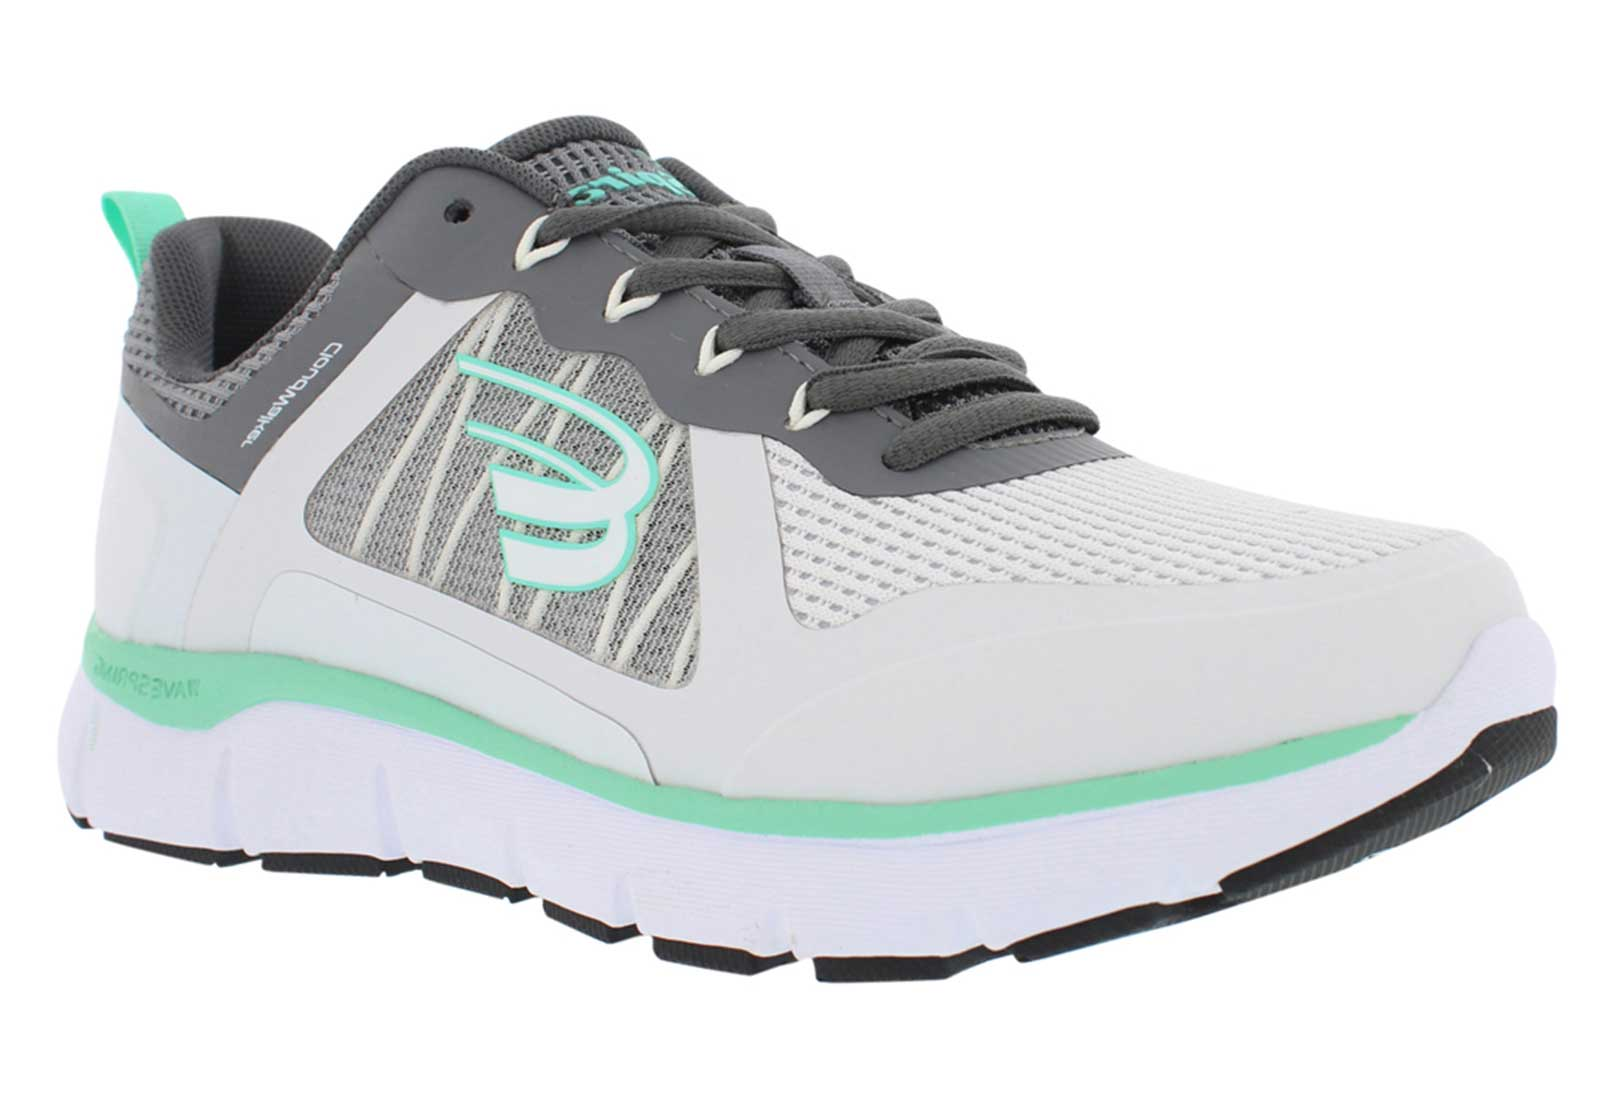 c75e92bda920 Spira Women s CloudWalker SCLD112 Walking Shoes - Women s ...